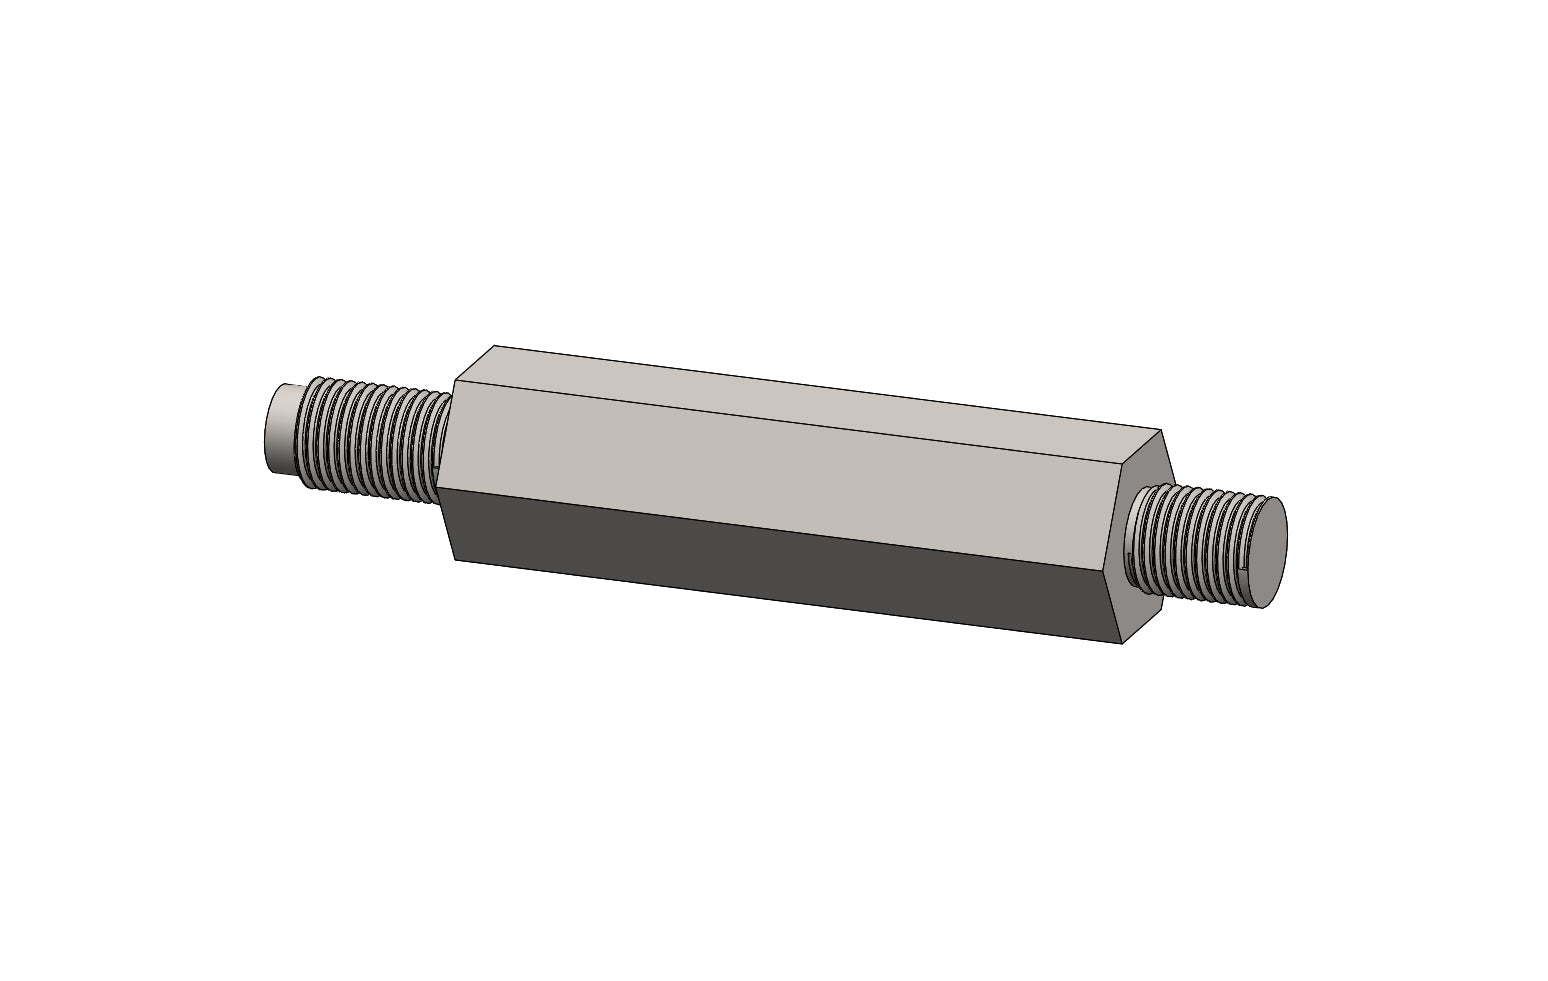 SCM13172 - SIDE COVER PILLAR for a Slat Filler